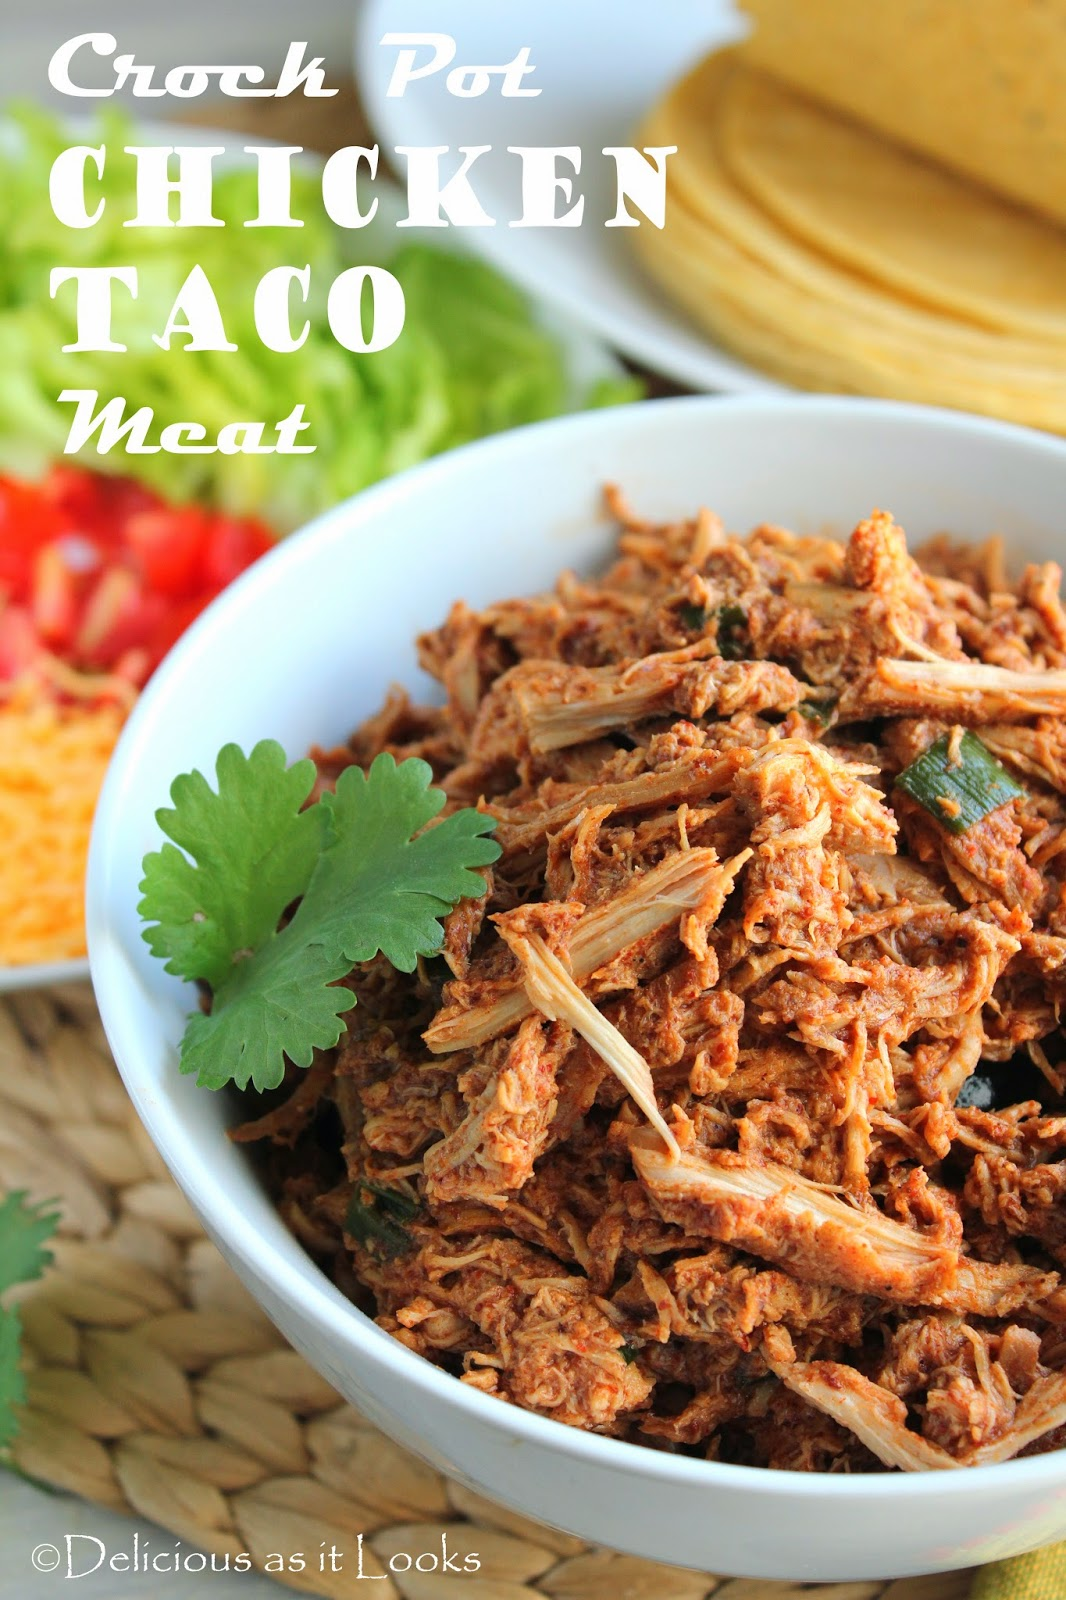 Crock Pot Chicken Taco Meat  /  Delicious as it Looks